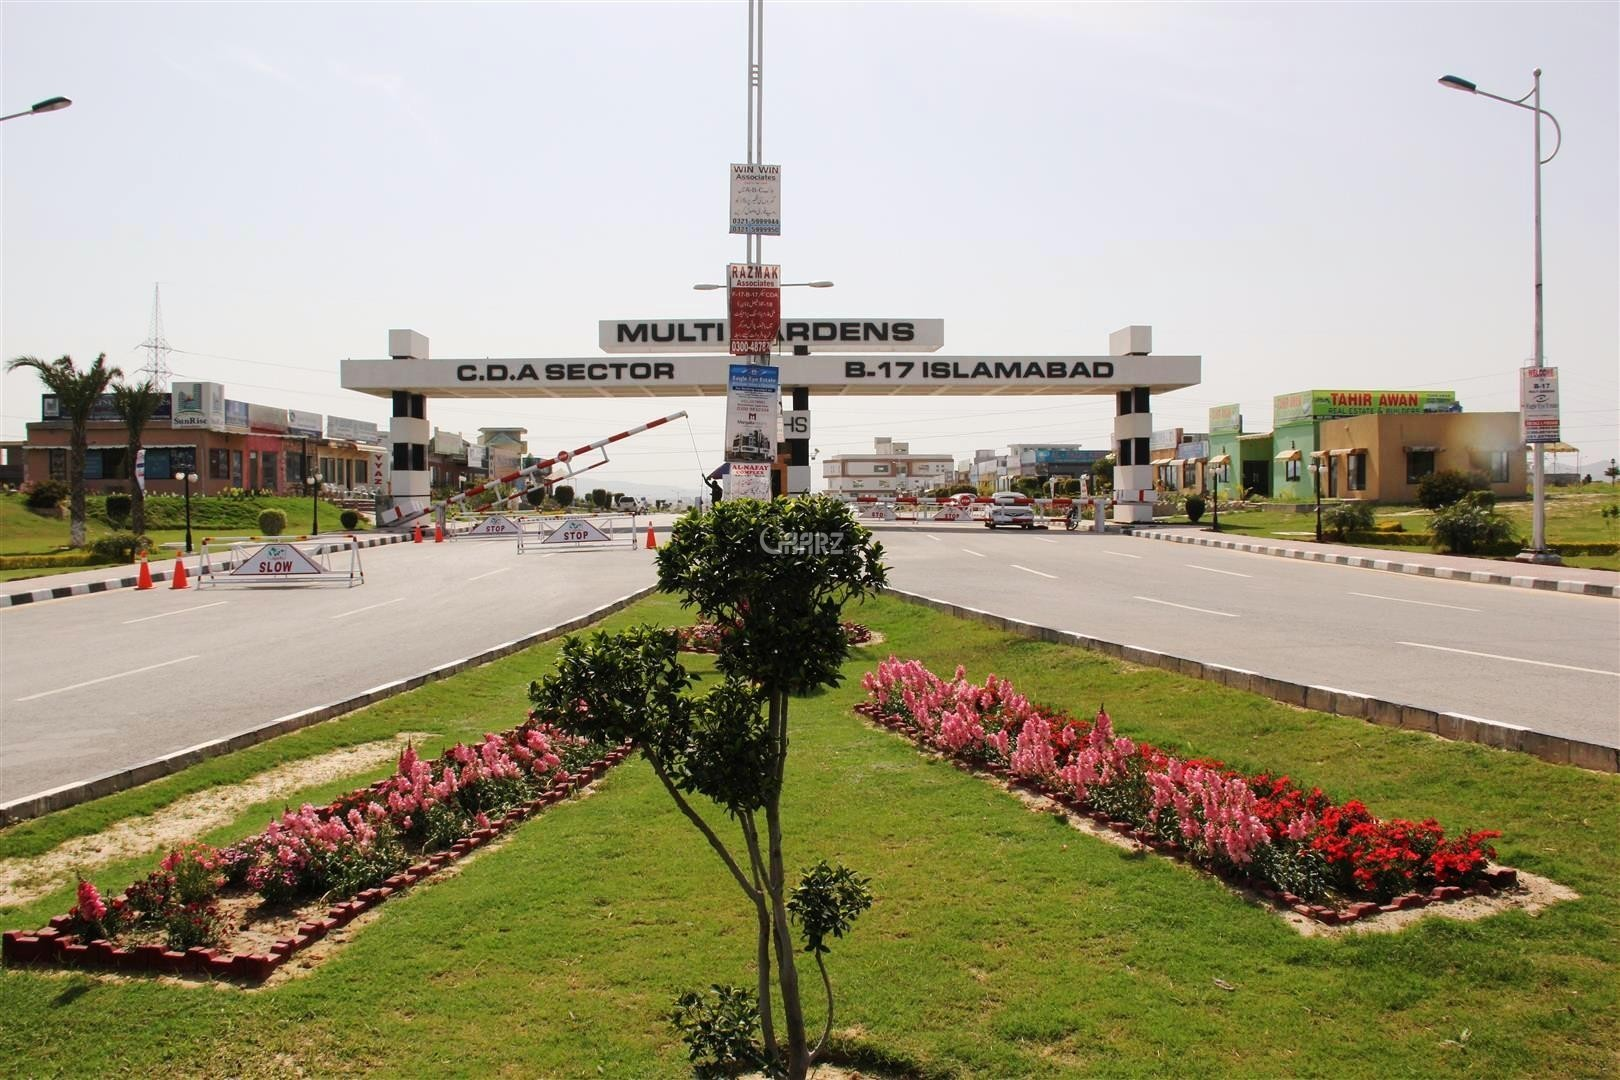 10 Marla Plot in B-17, Islamabad for Sale